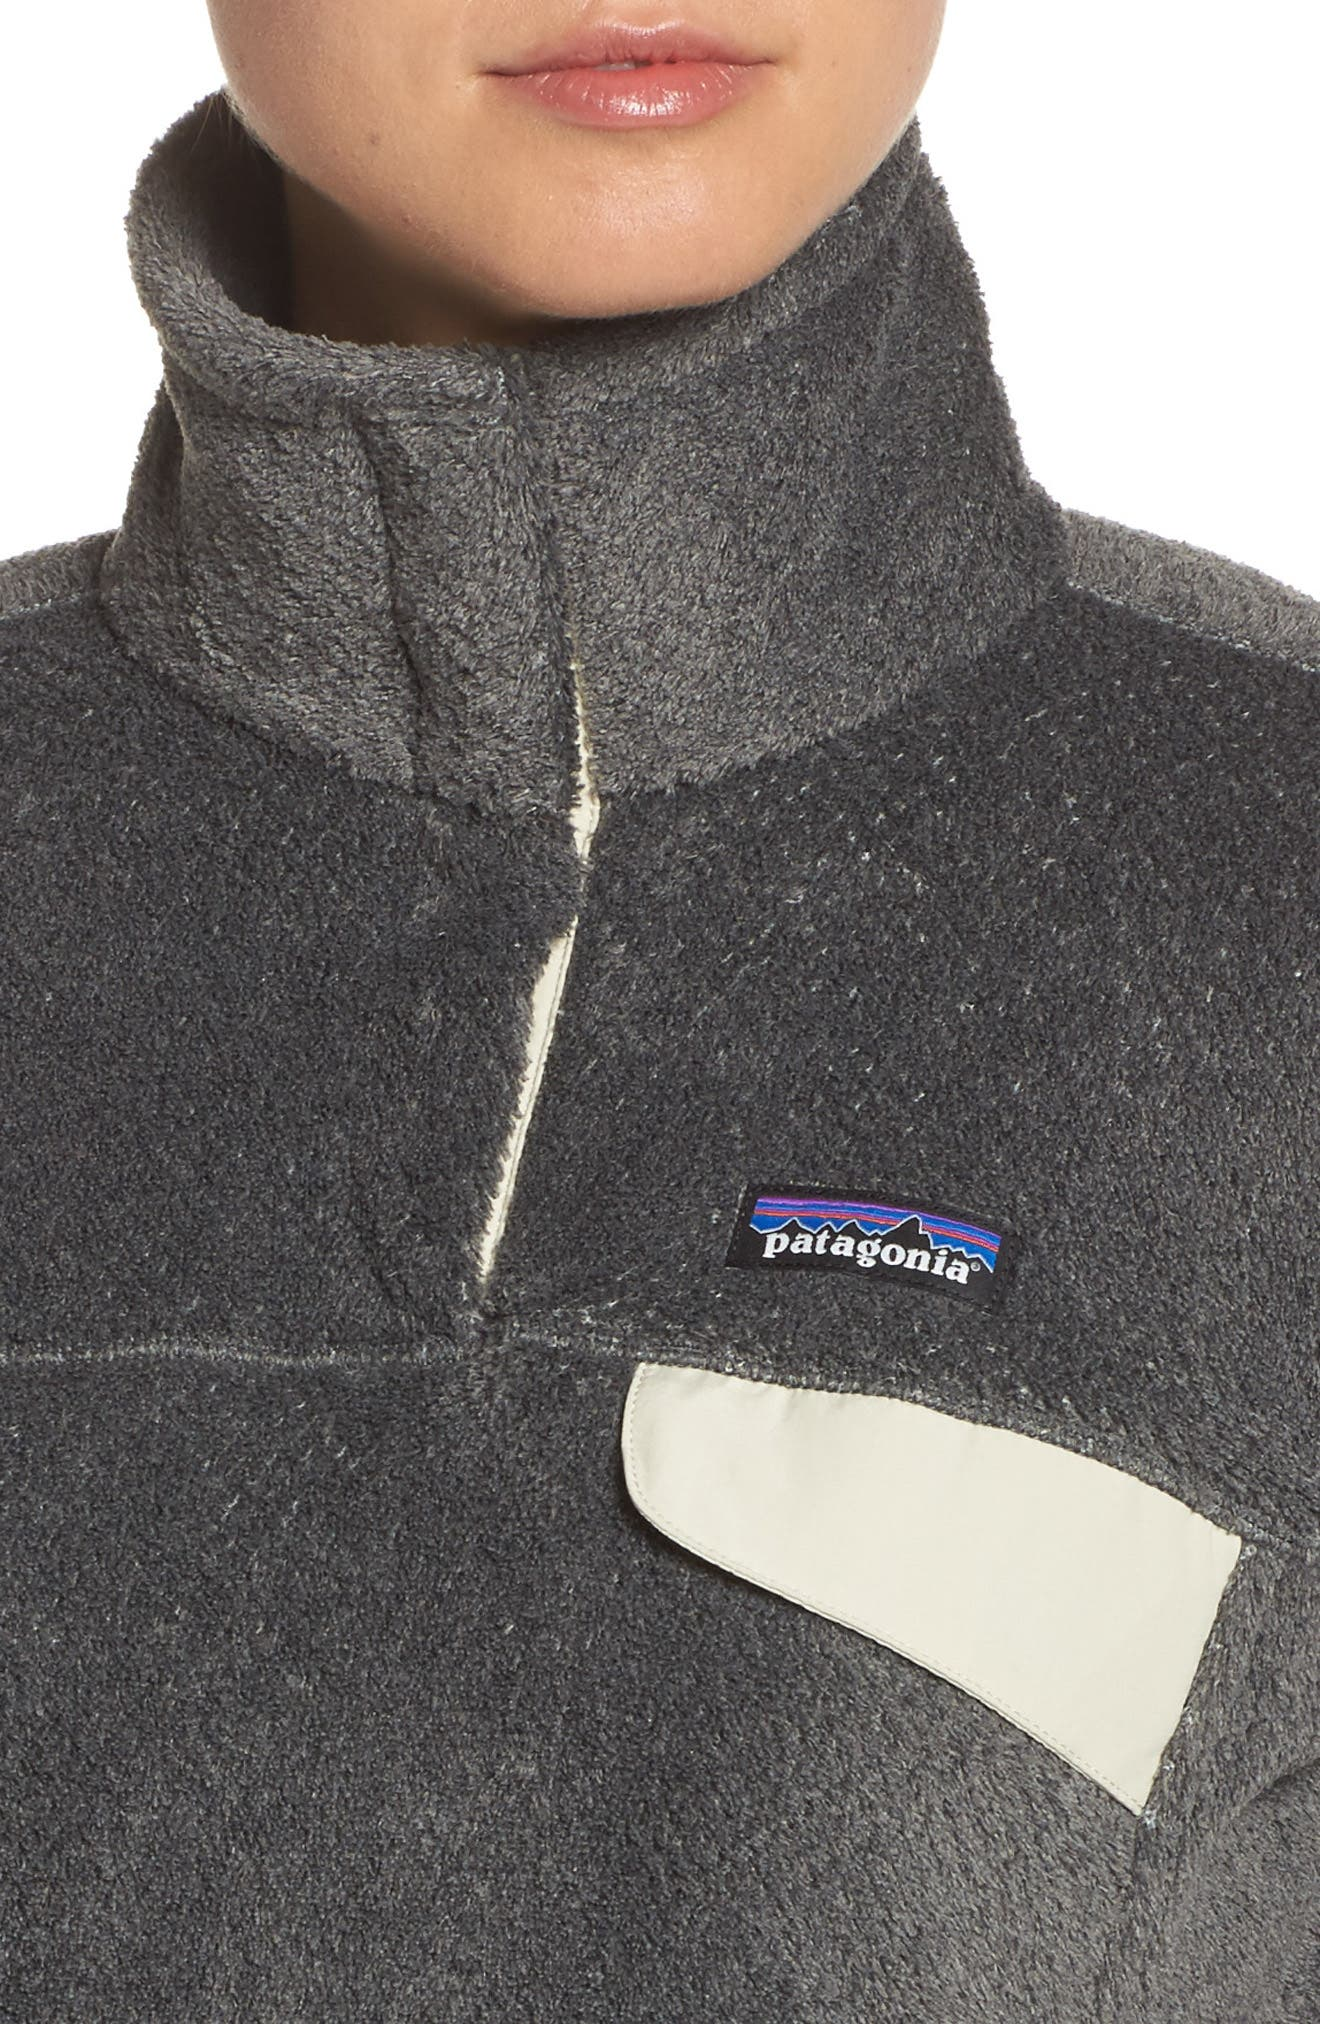 ,                             Re-Tool Snap-T<sup>®</sup> Fleece Pullover,                             Alternate thumbnail 6, color,                             027